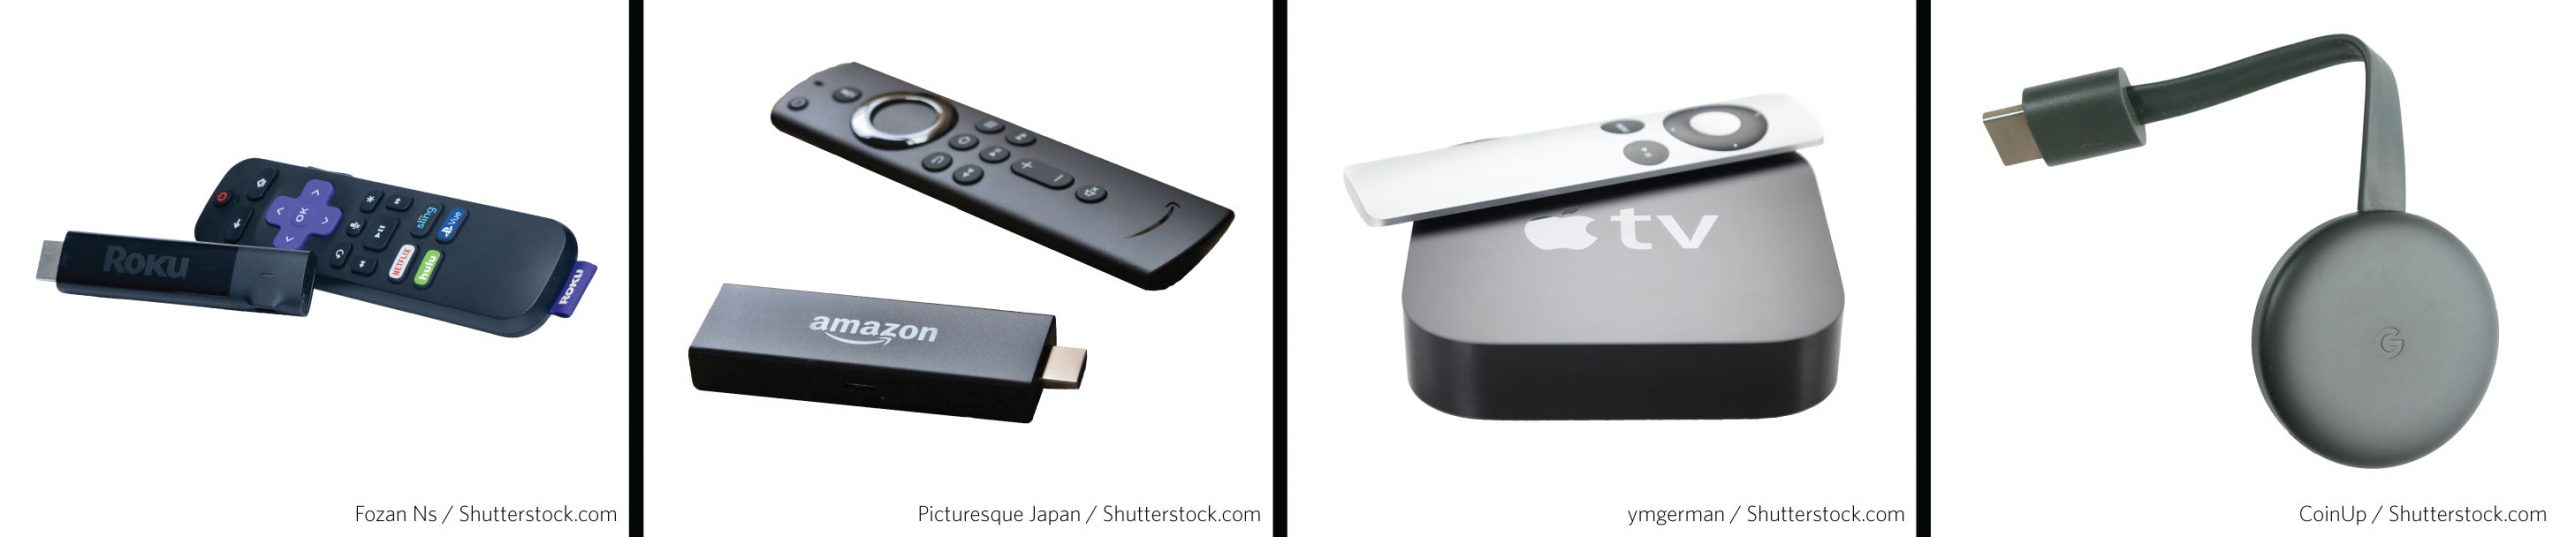 Picture of various devices used for cutting the cord including a roku streaming player, amazon fire stick, apple TV player, and Google Chromecast